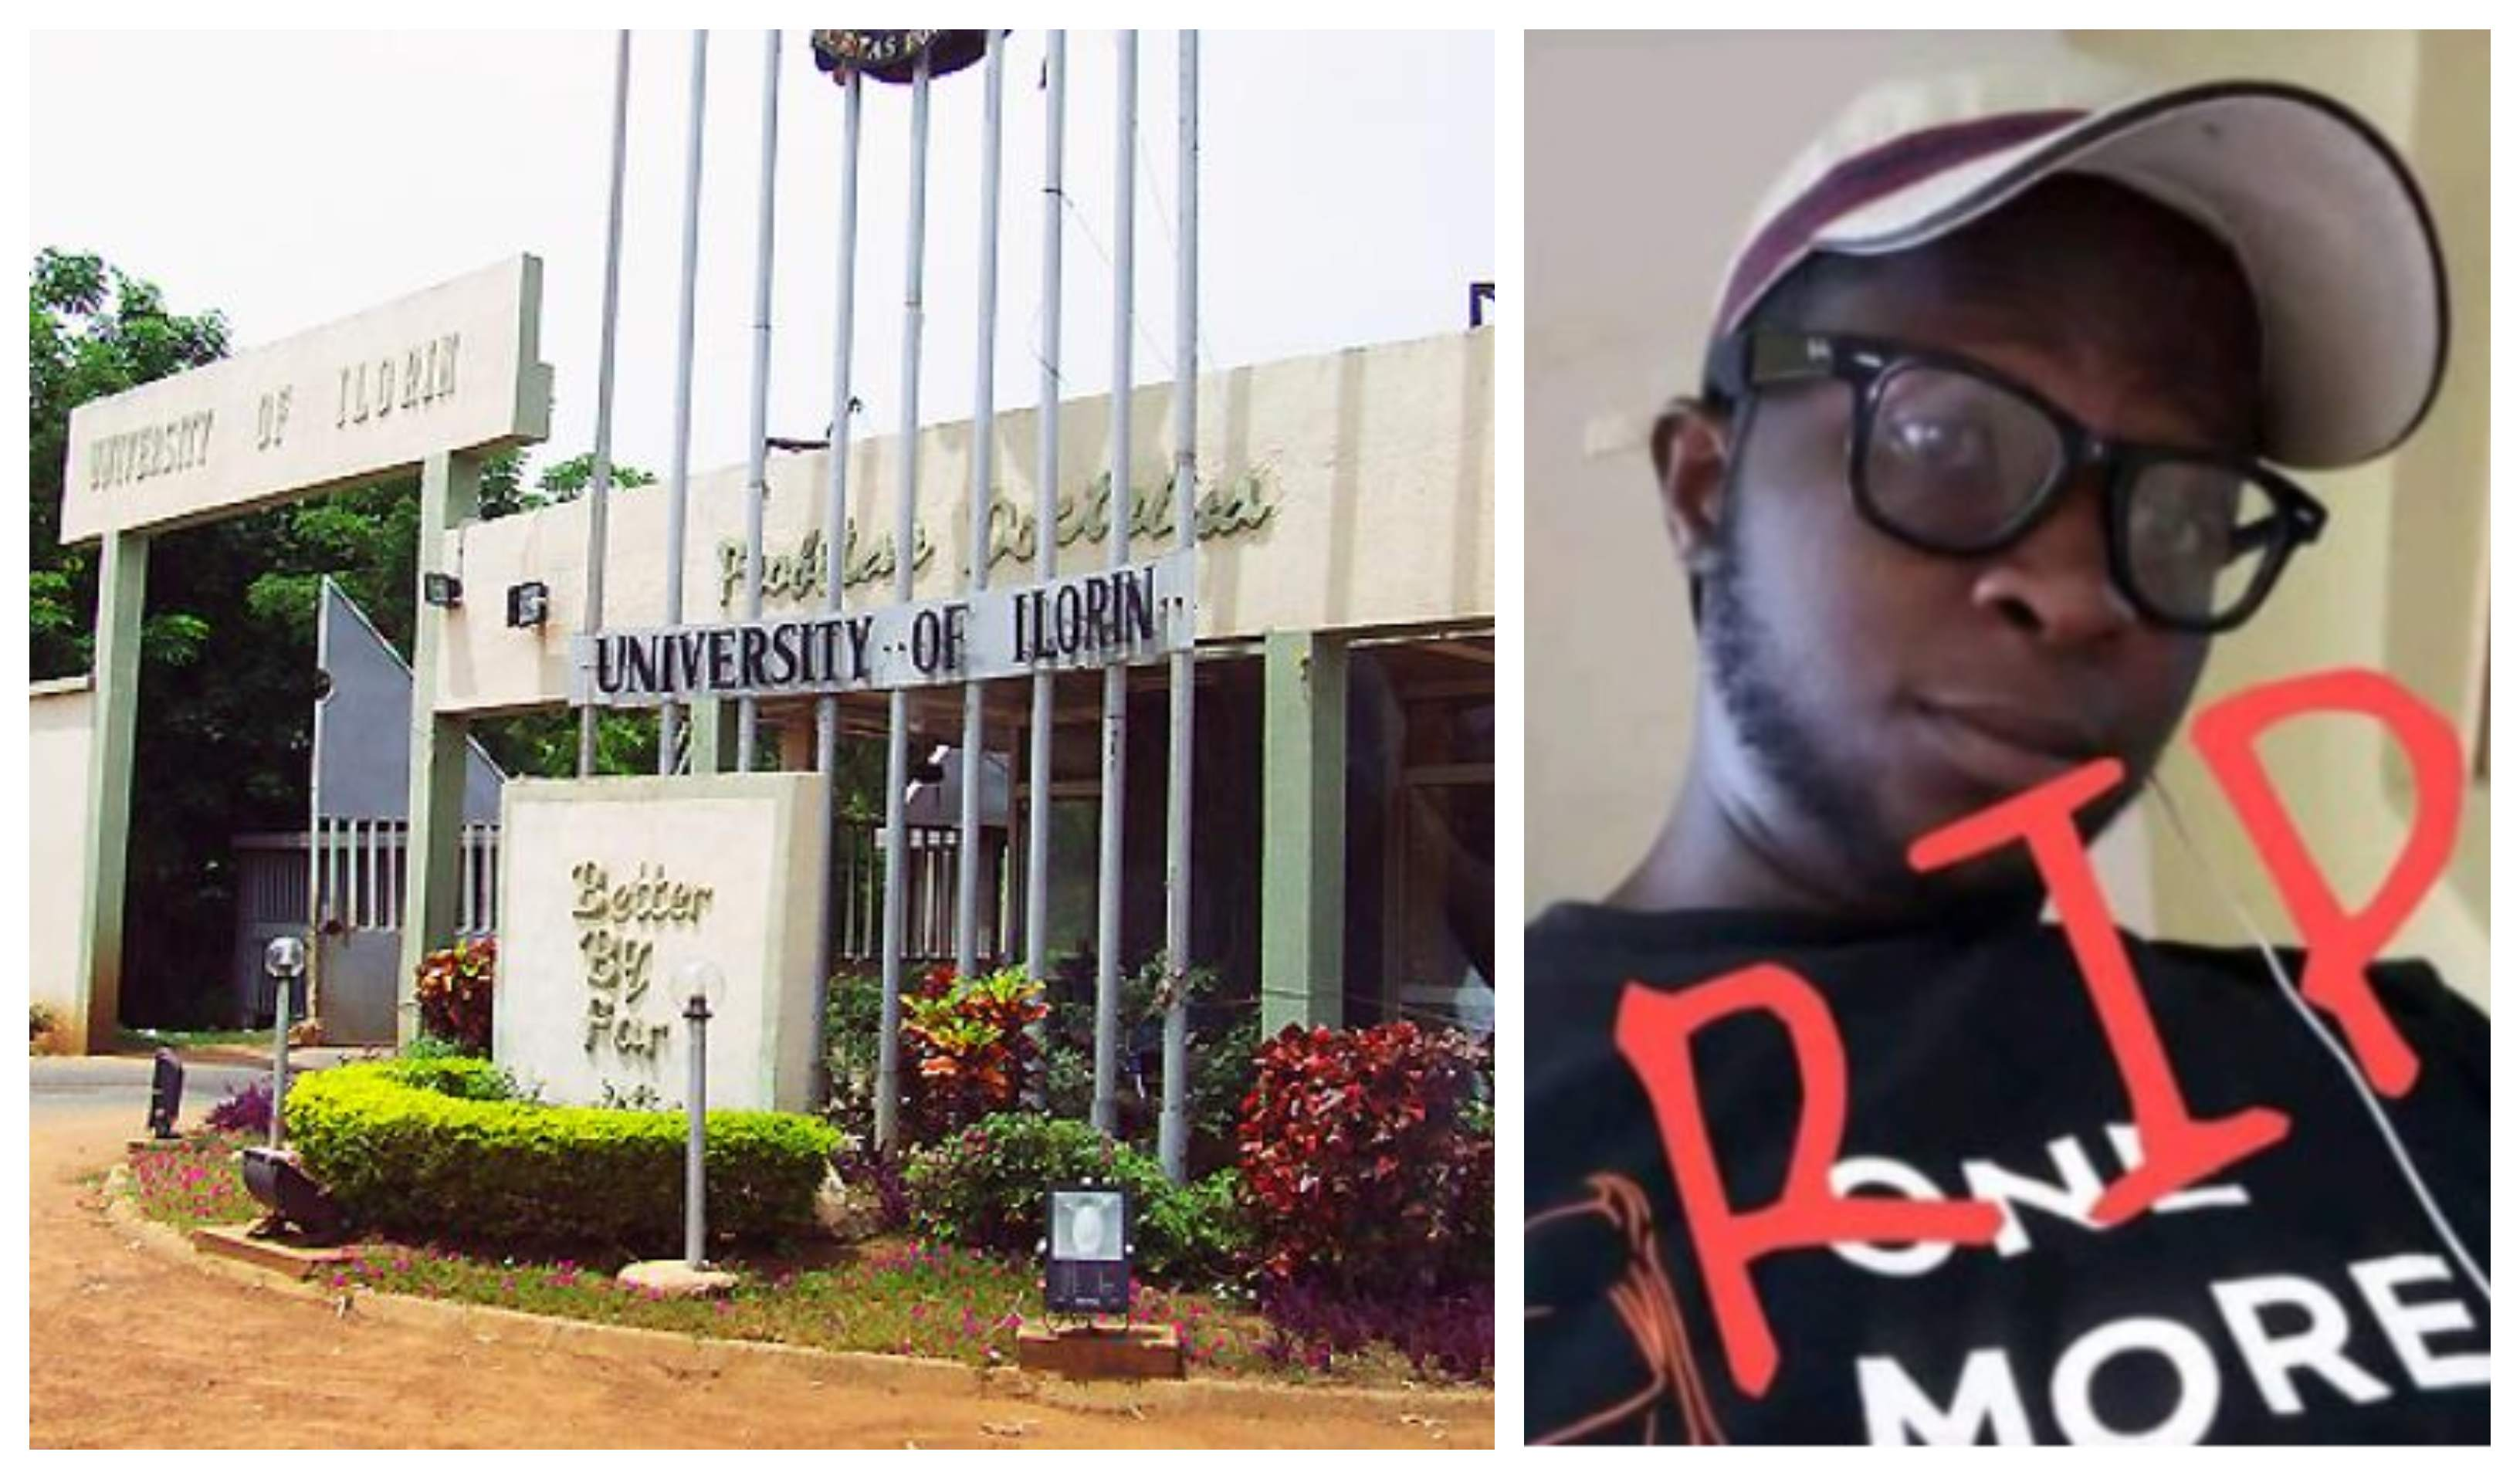 Olawole Suicide UNILORIN OkayNG - UNILORIN Student's Suicide Was Drug-induced - School Management